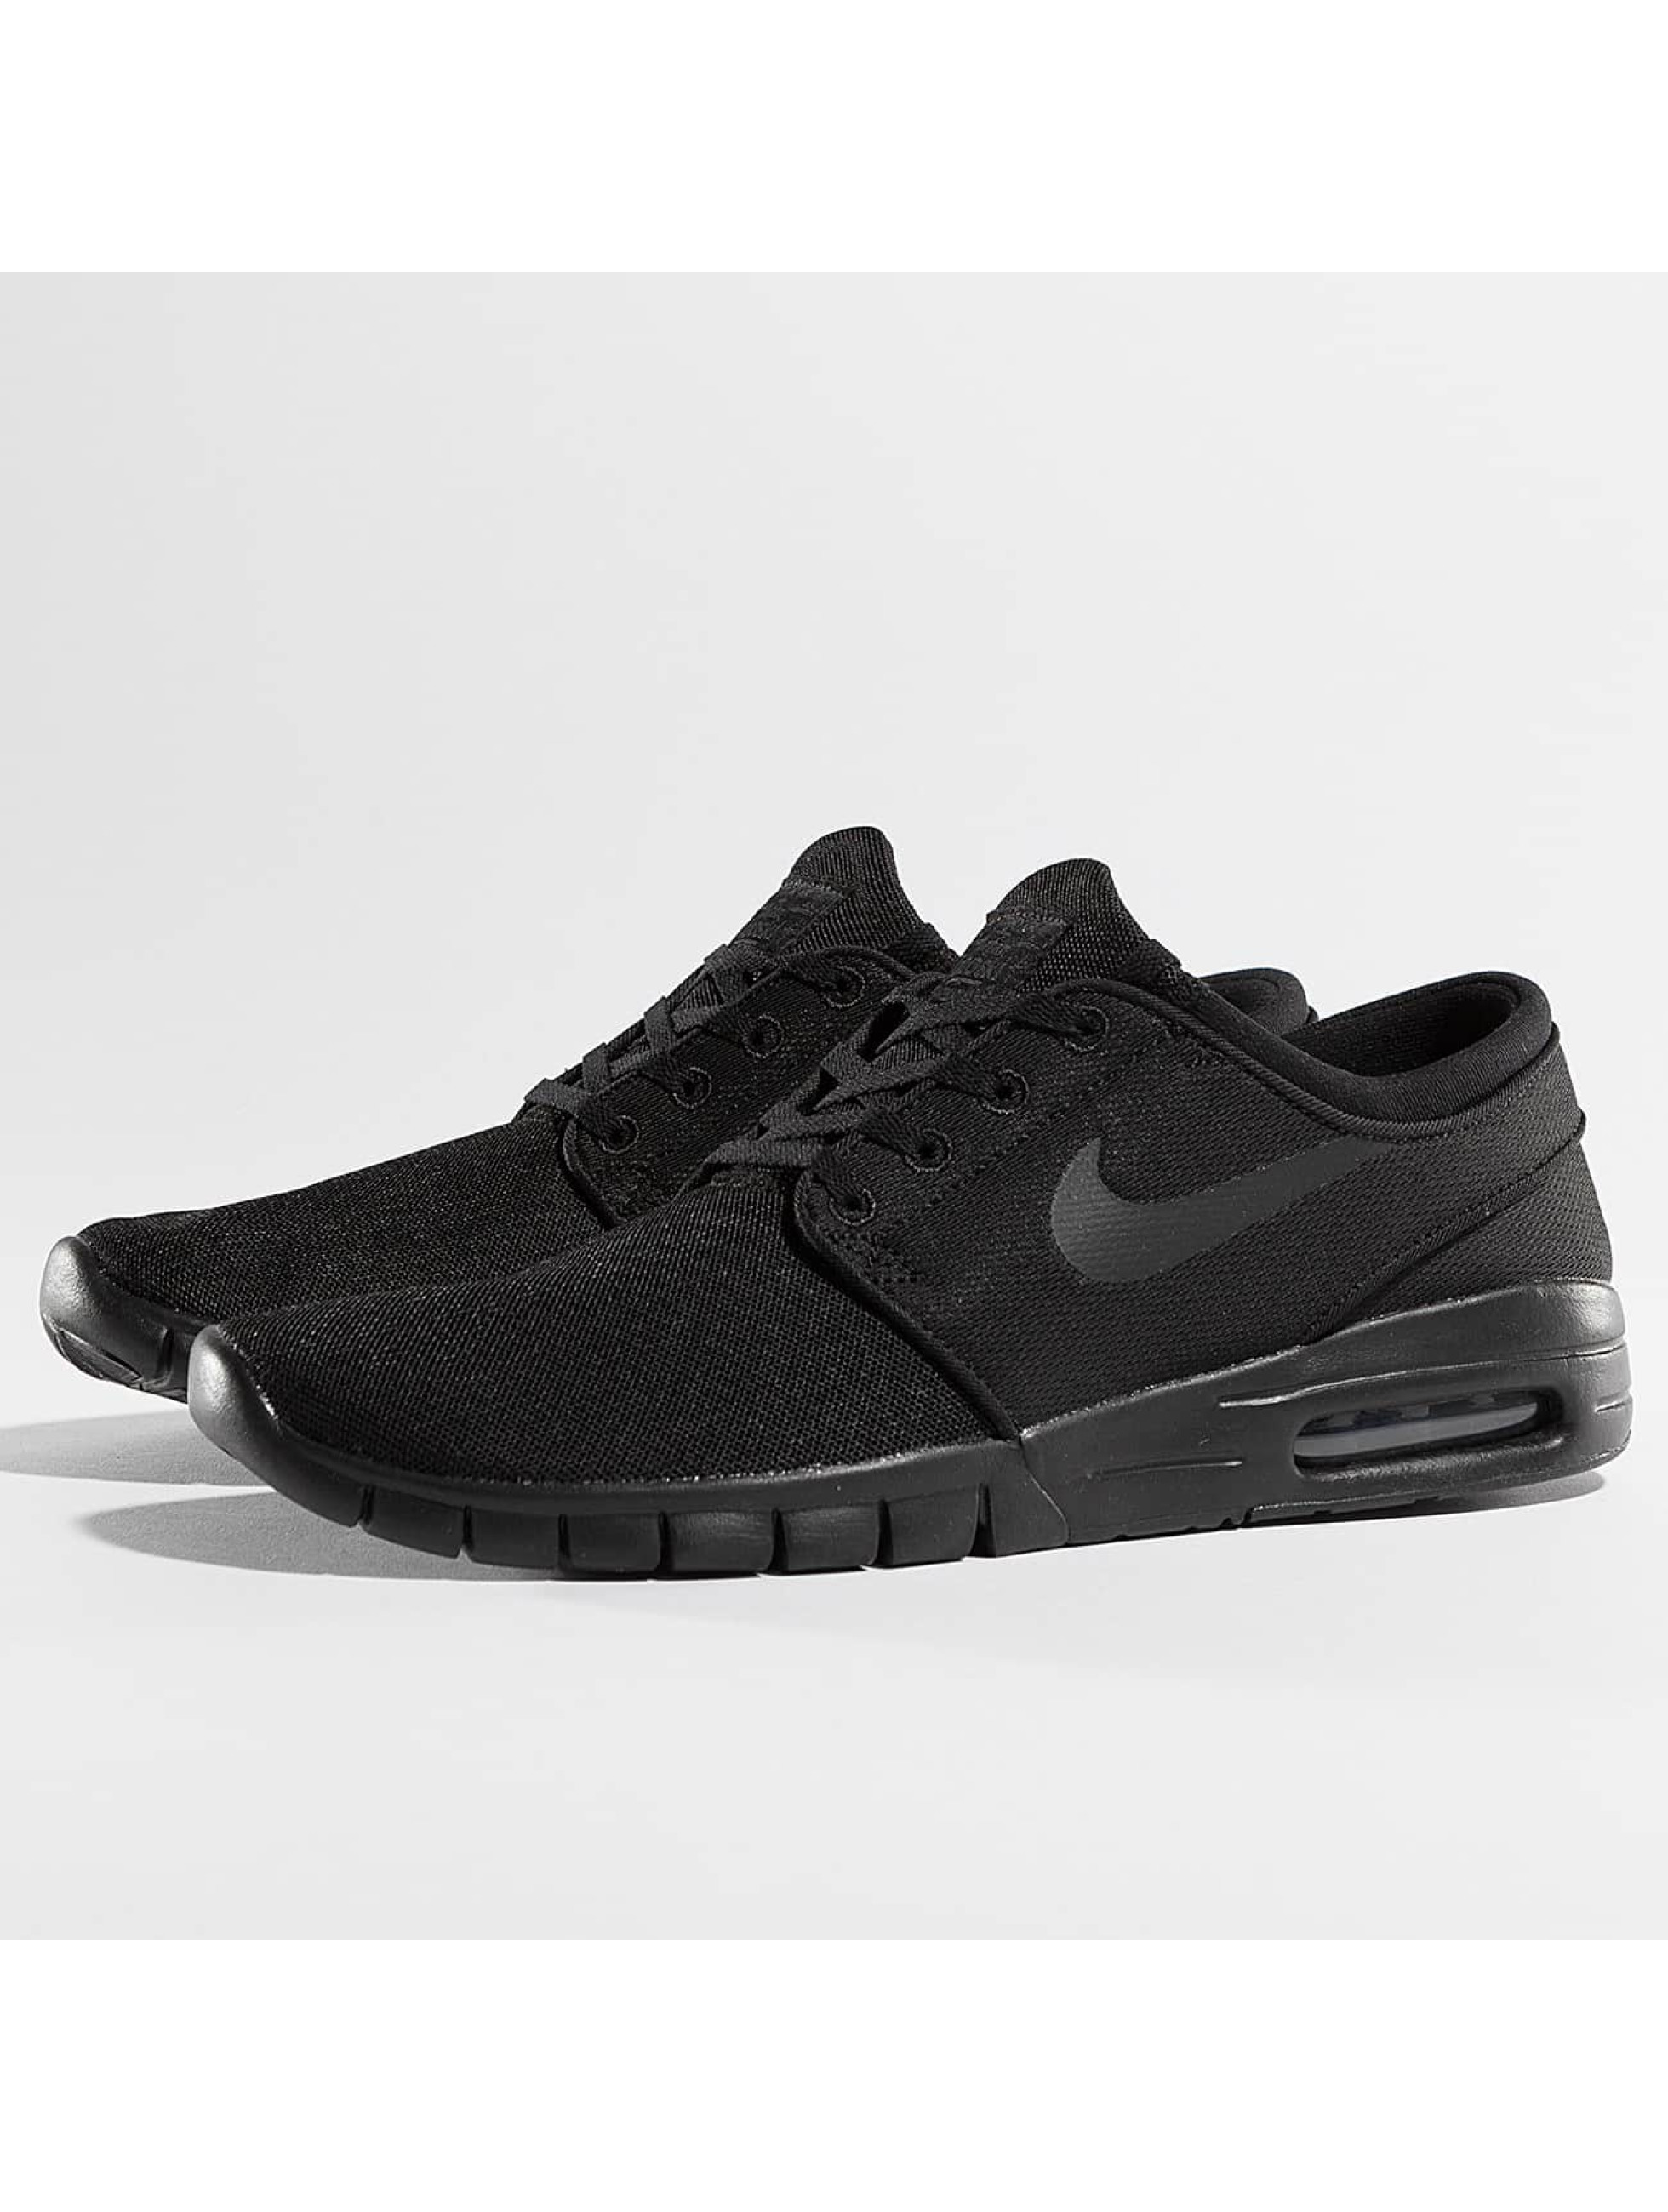 nike sb herren sneaker stefan janoski max in schwarz 219046. Black Bedroom Furniture Sets. Home Design Ideas